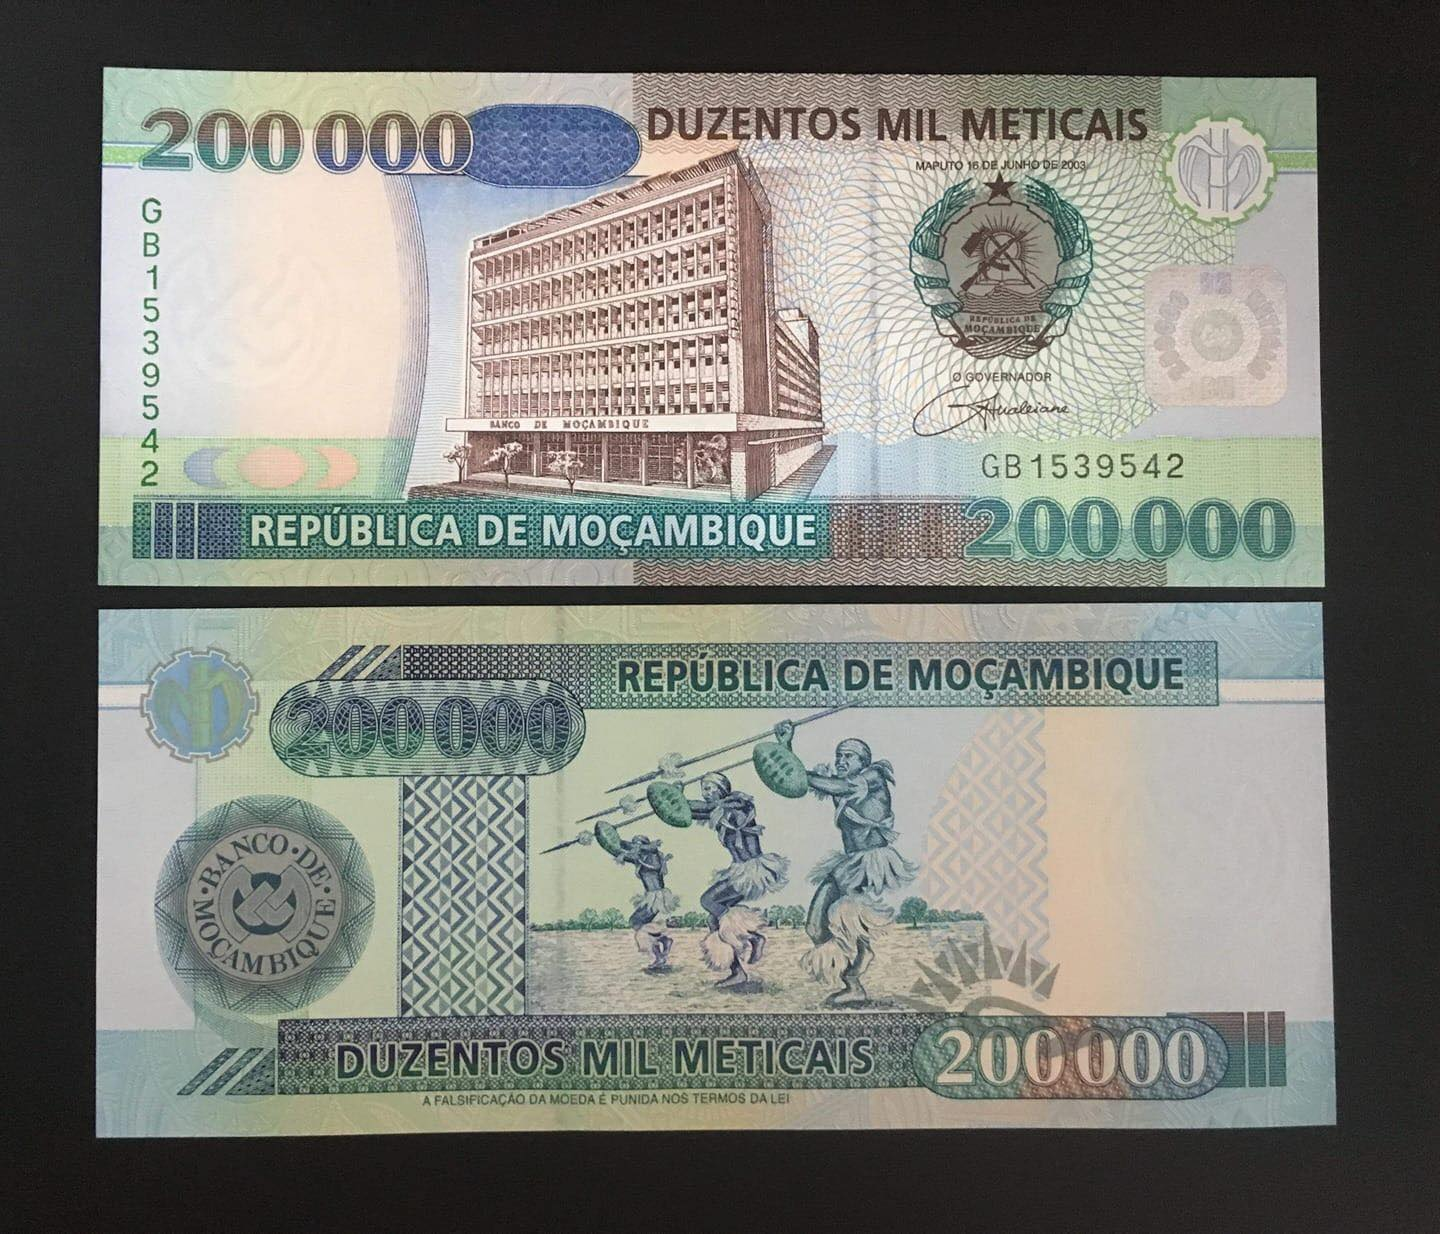 200000 Metical, tiền Mozambique